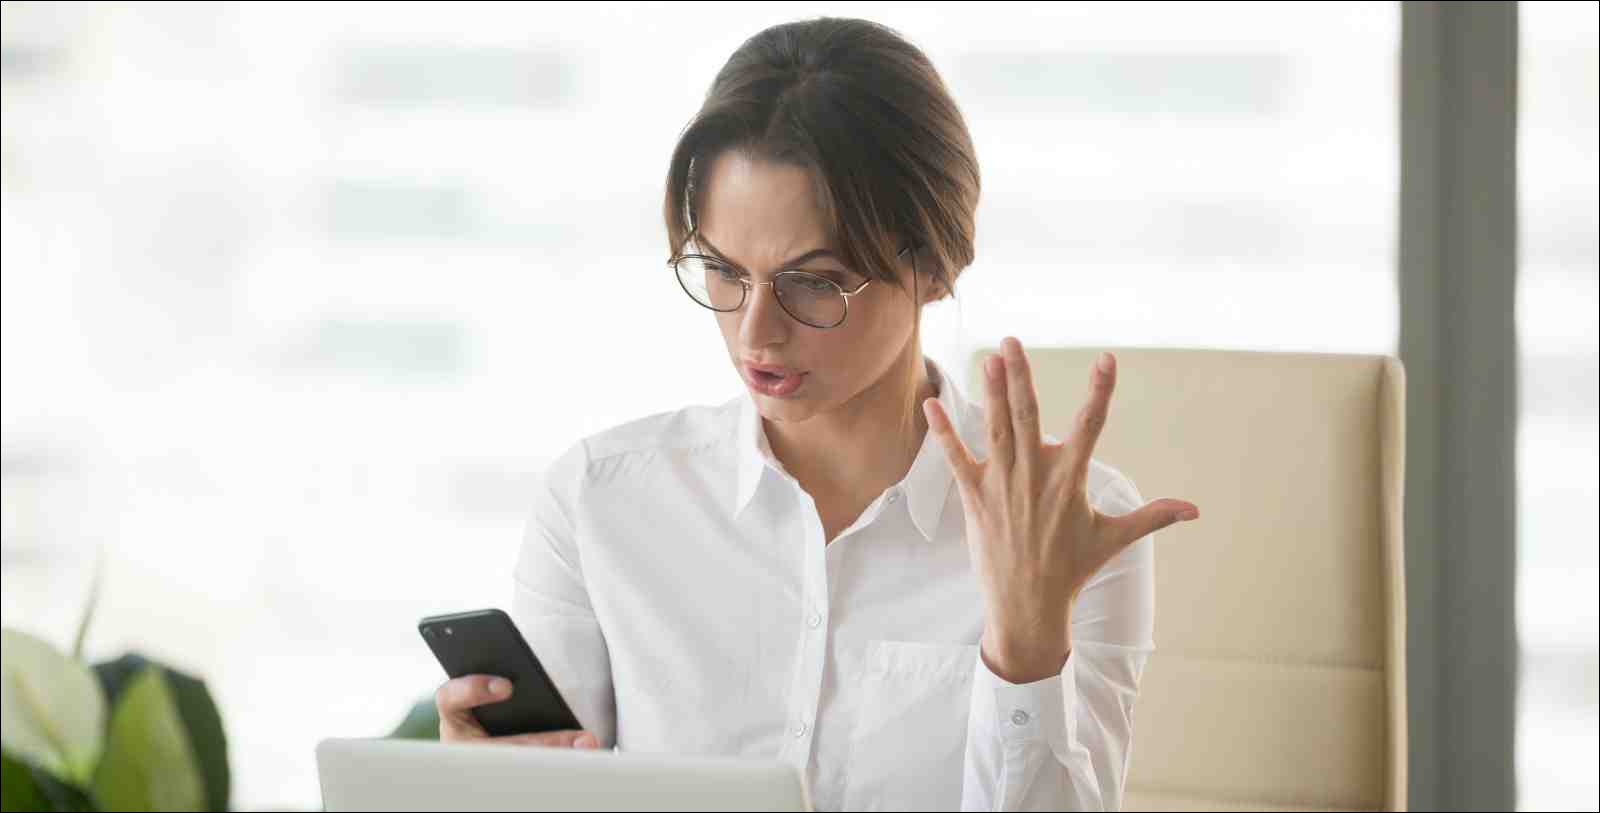 frustrated woman with no cell phone signal